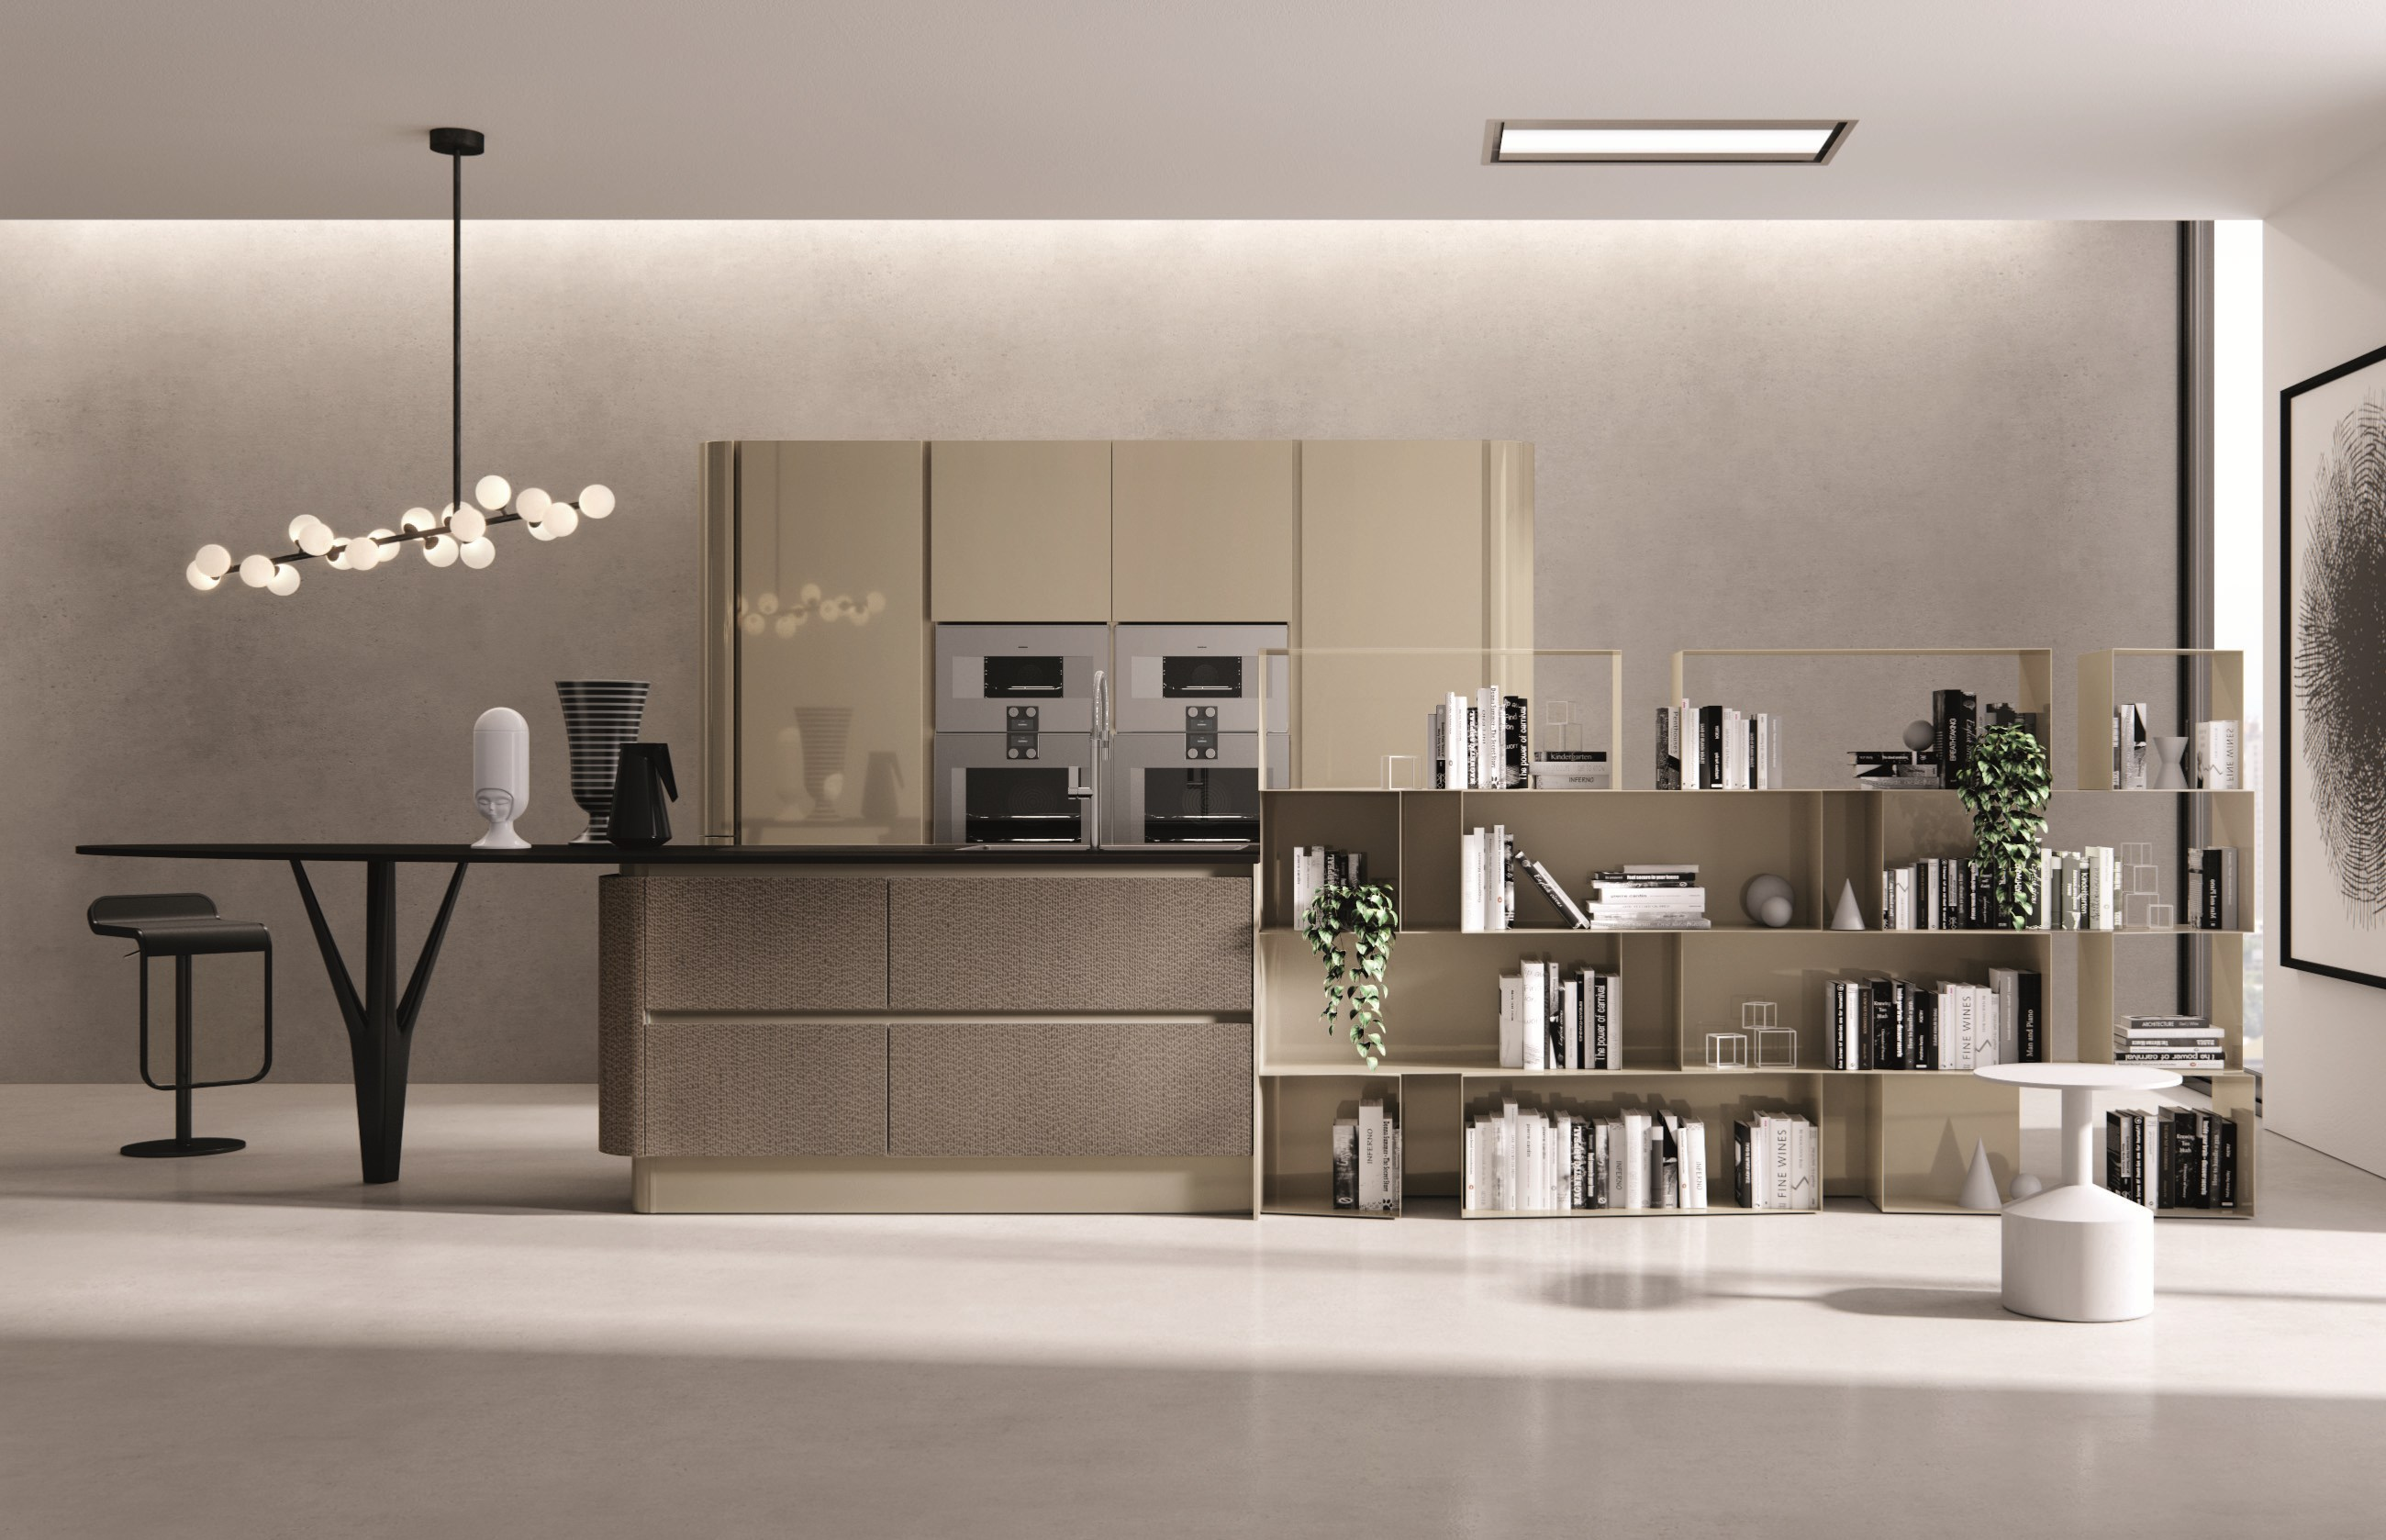 Stunning Cucine Aster Prezzi Pictures - harrop.us - harrop.us